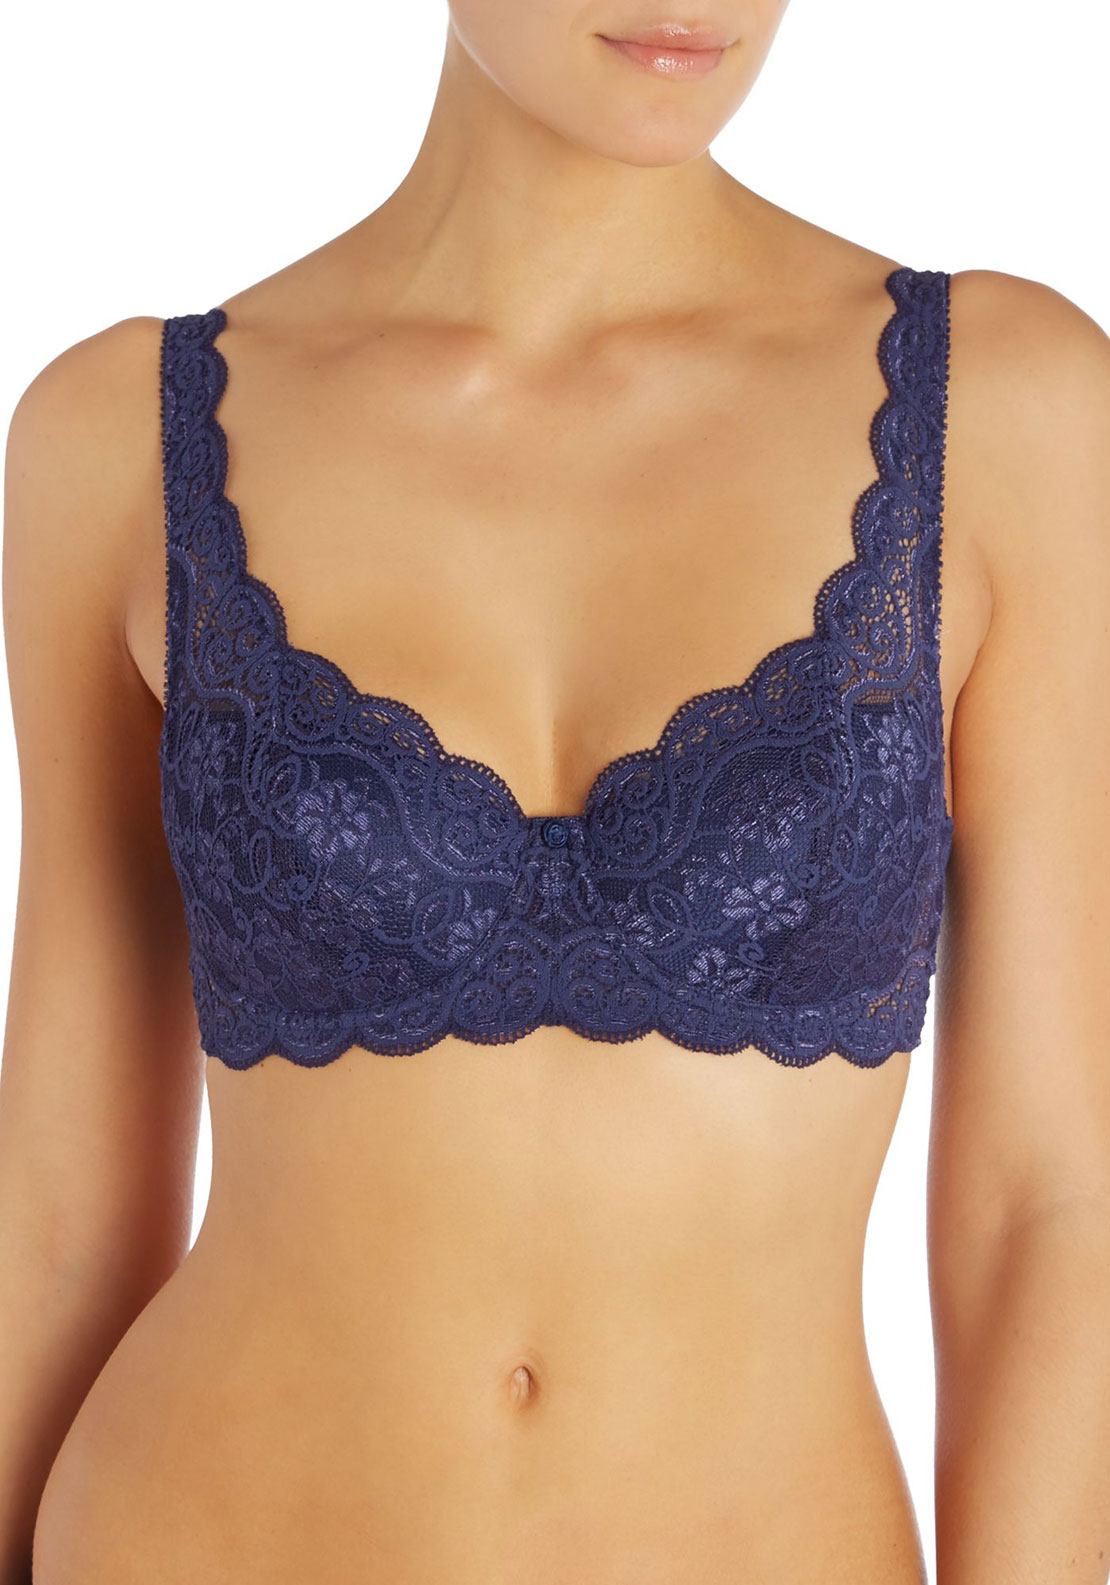 Triumph Amourette Lace Underwired Bra, Navy